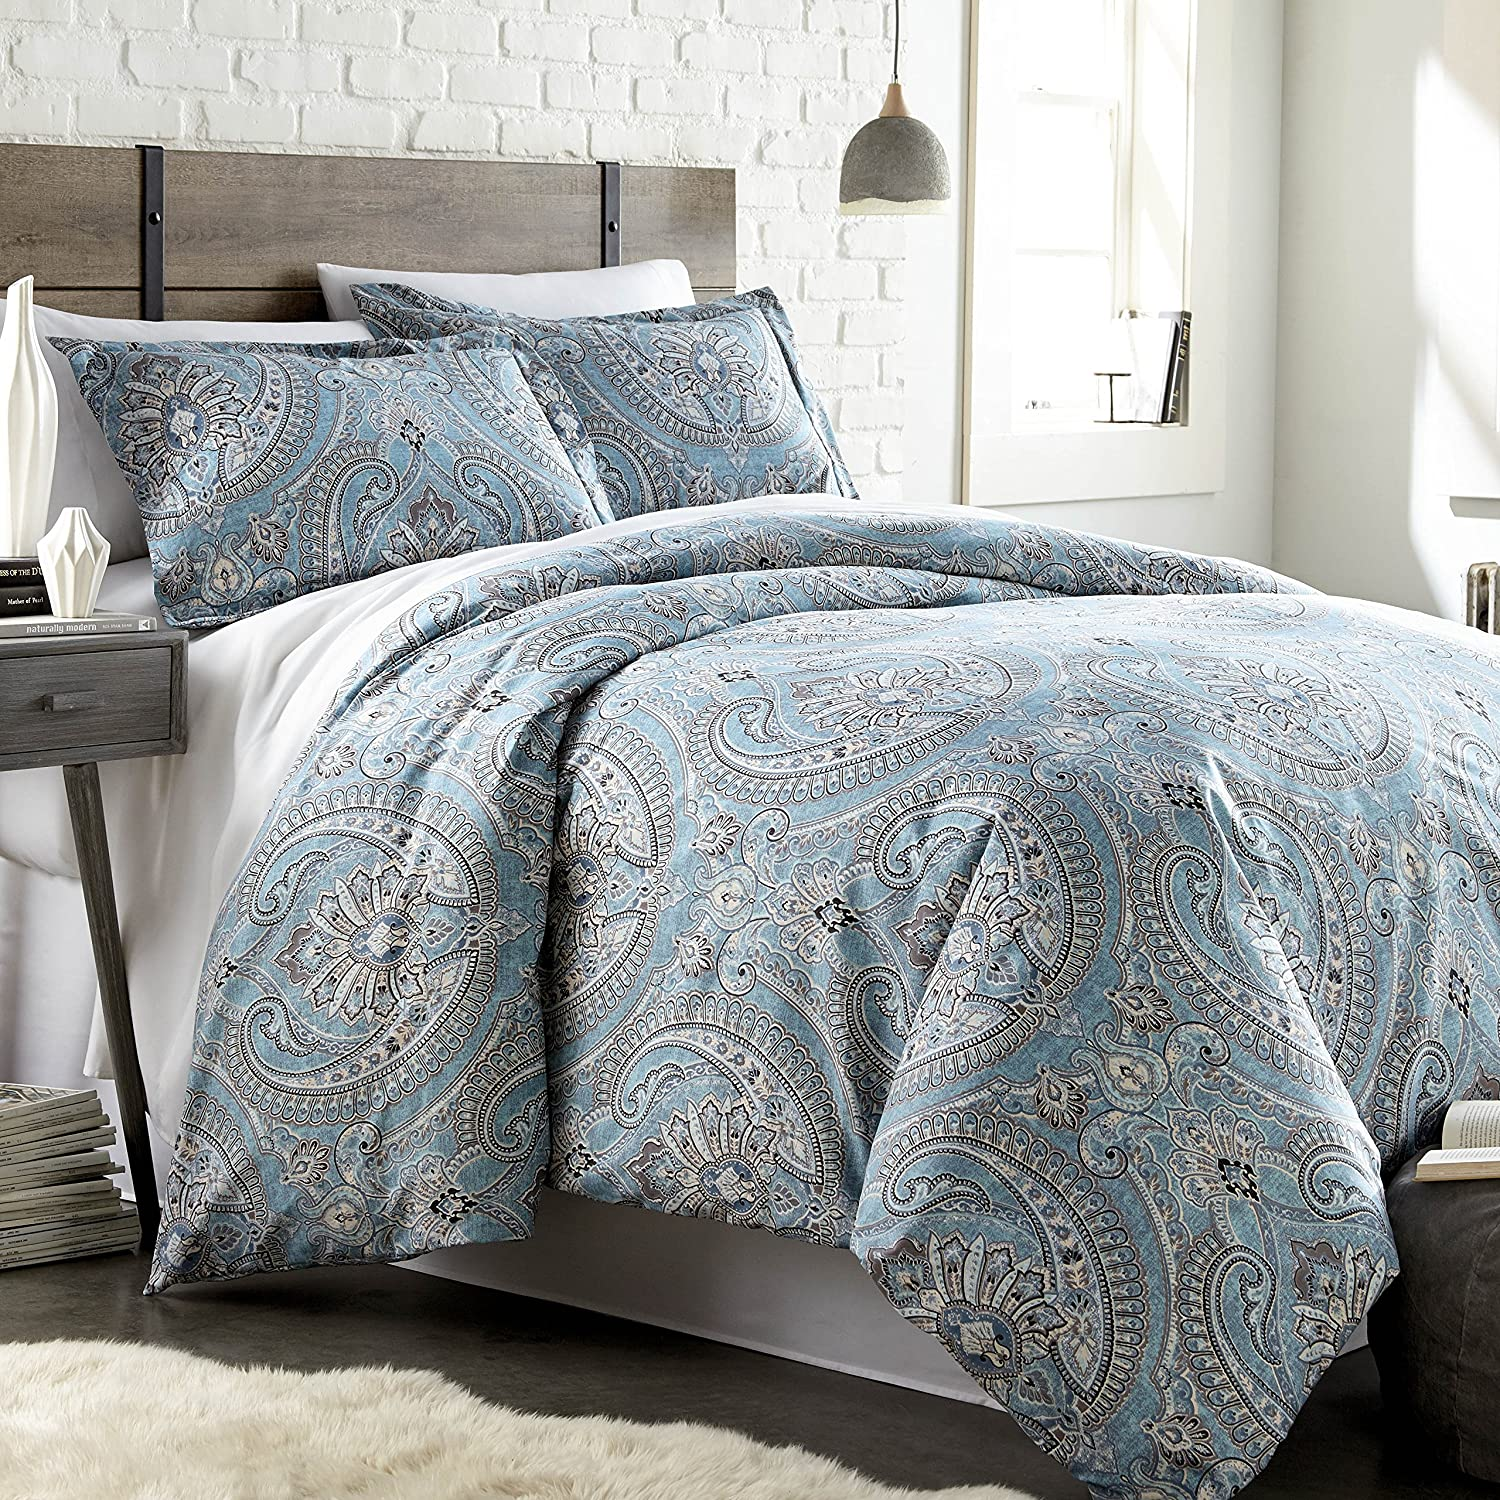 Southshore Fine Linens - The Pure Melody Collection - Duvet Cover Sets, 3 Piece Set, King/California King, Aqua